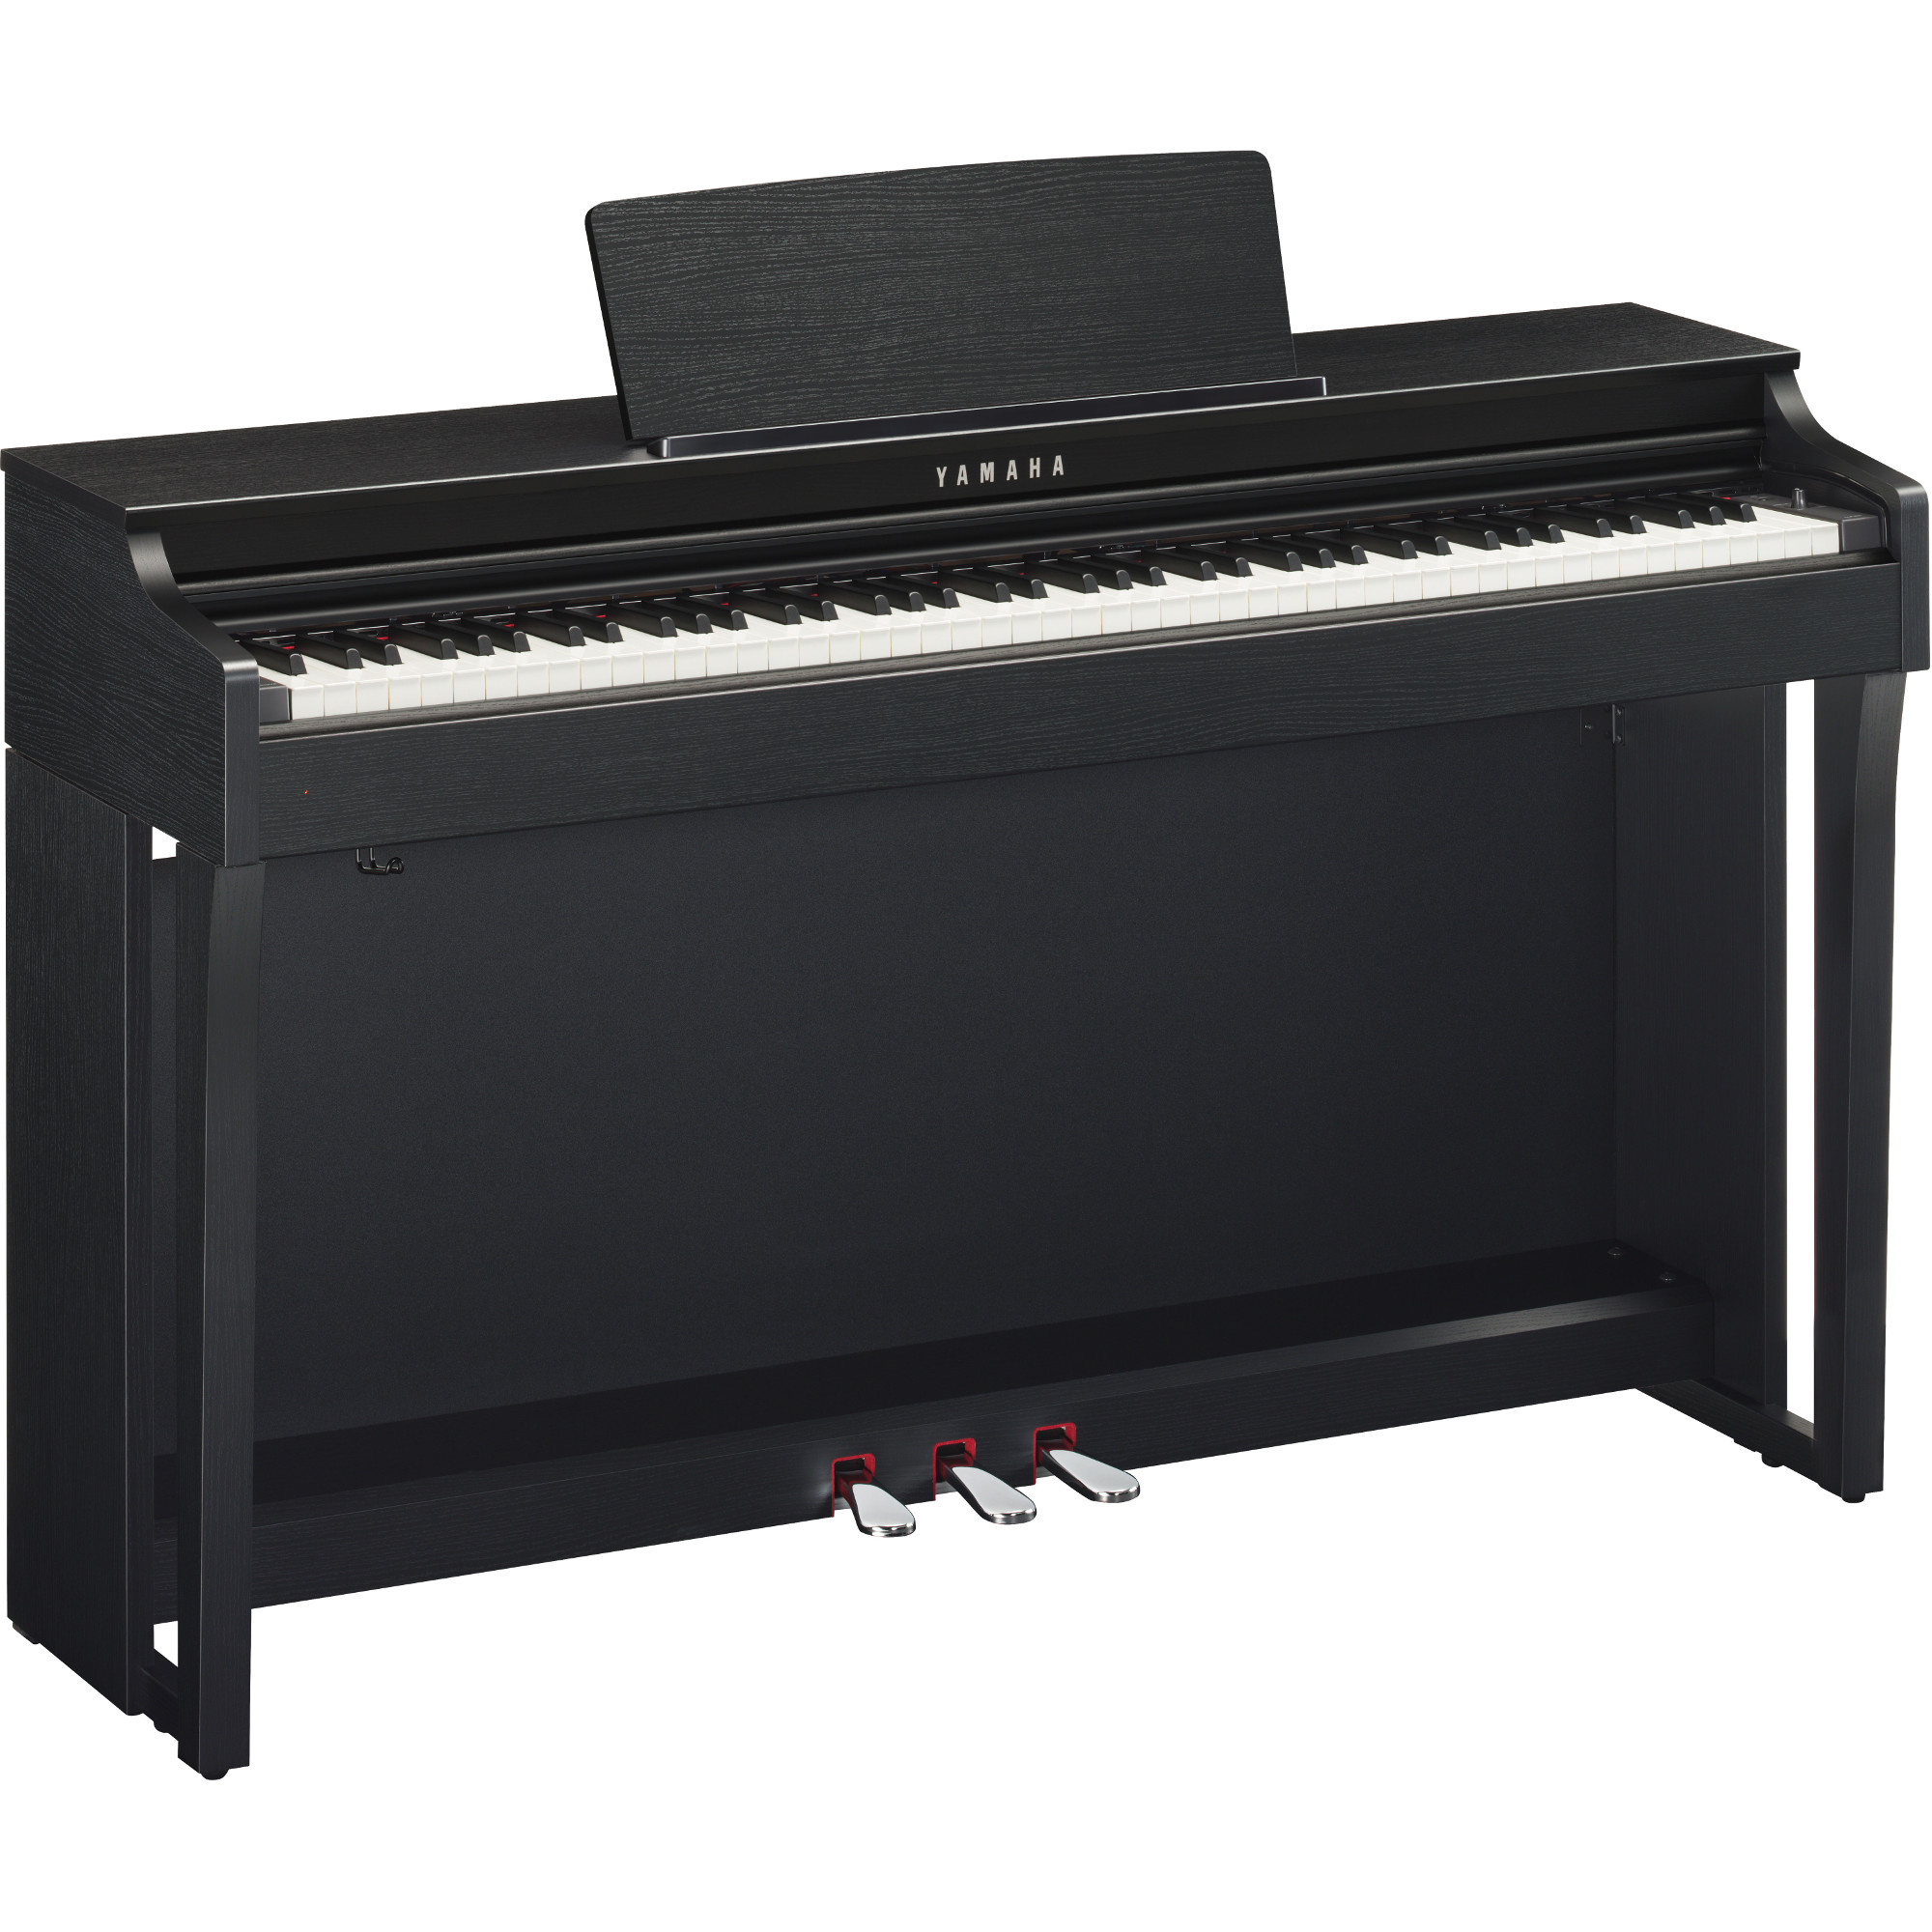 yamaha clp 625b clavinova e piano schwarz kaufen bax shop. Black Bedroom Furniture Sets. Home Design Ideas